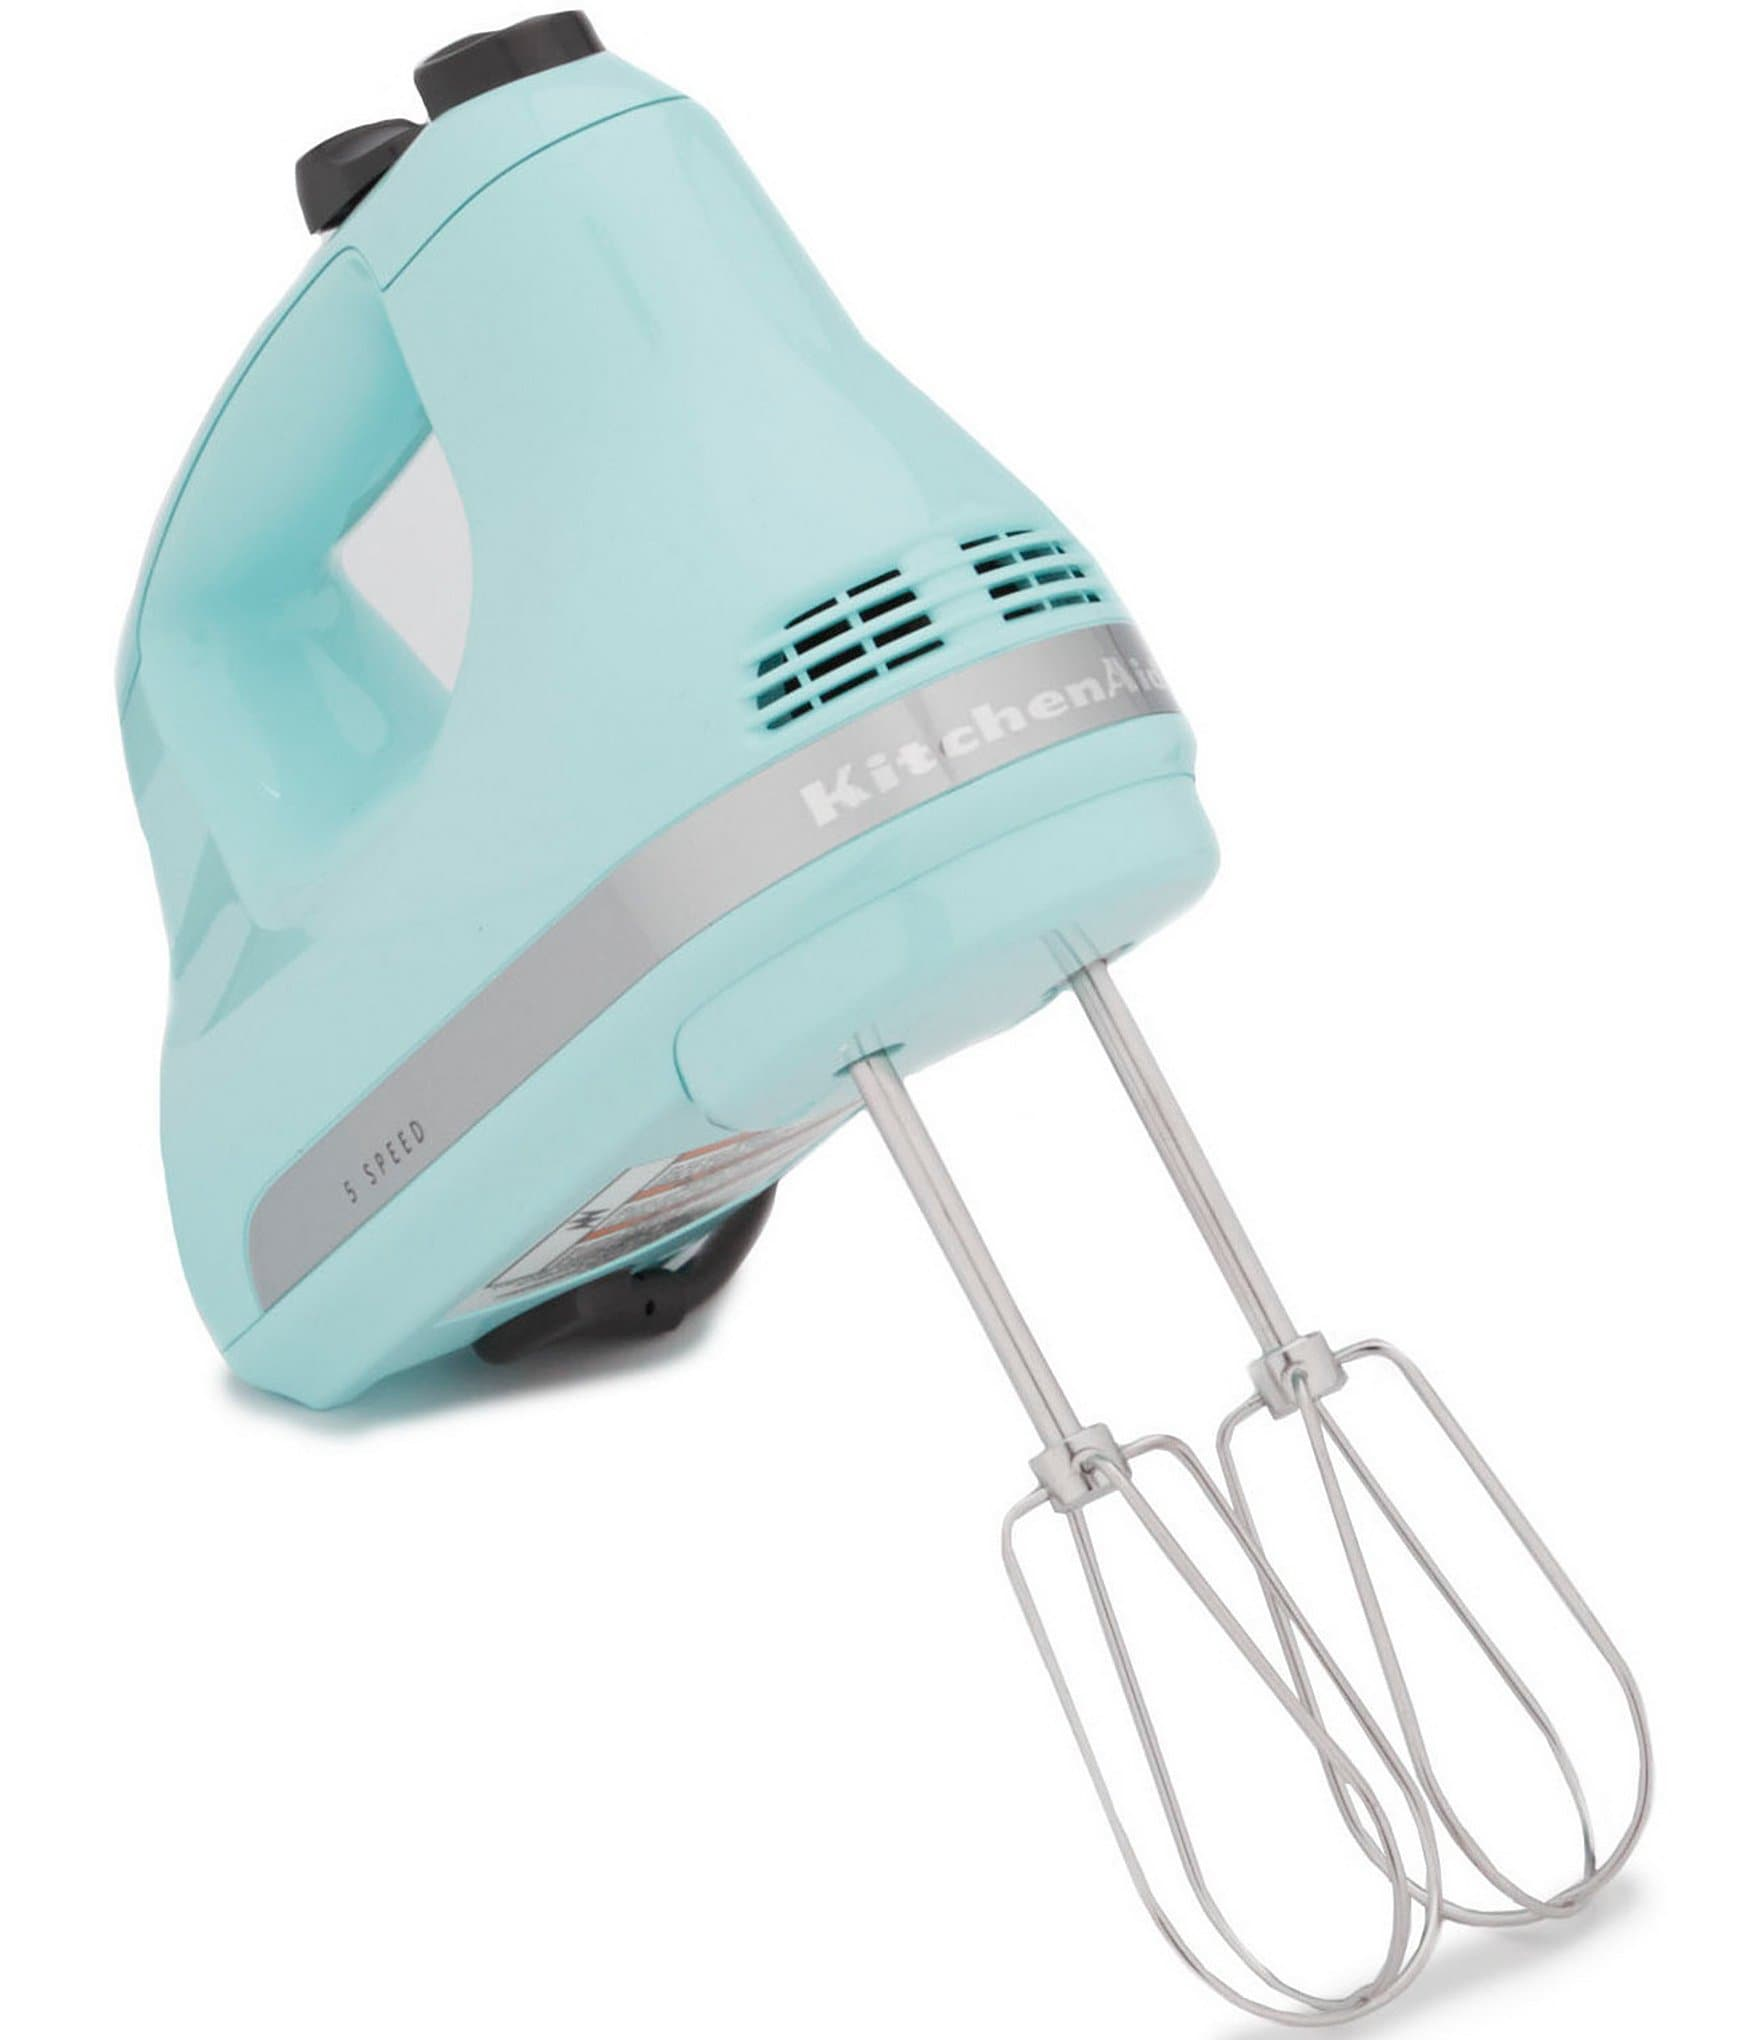 ice kitchen tools decor dillardscom - Kitchen Aid Hand Mixer